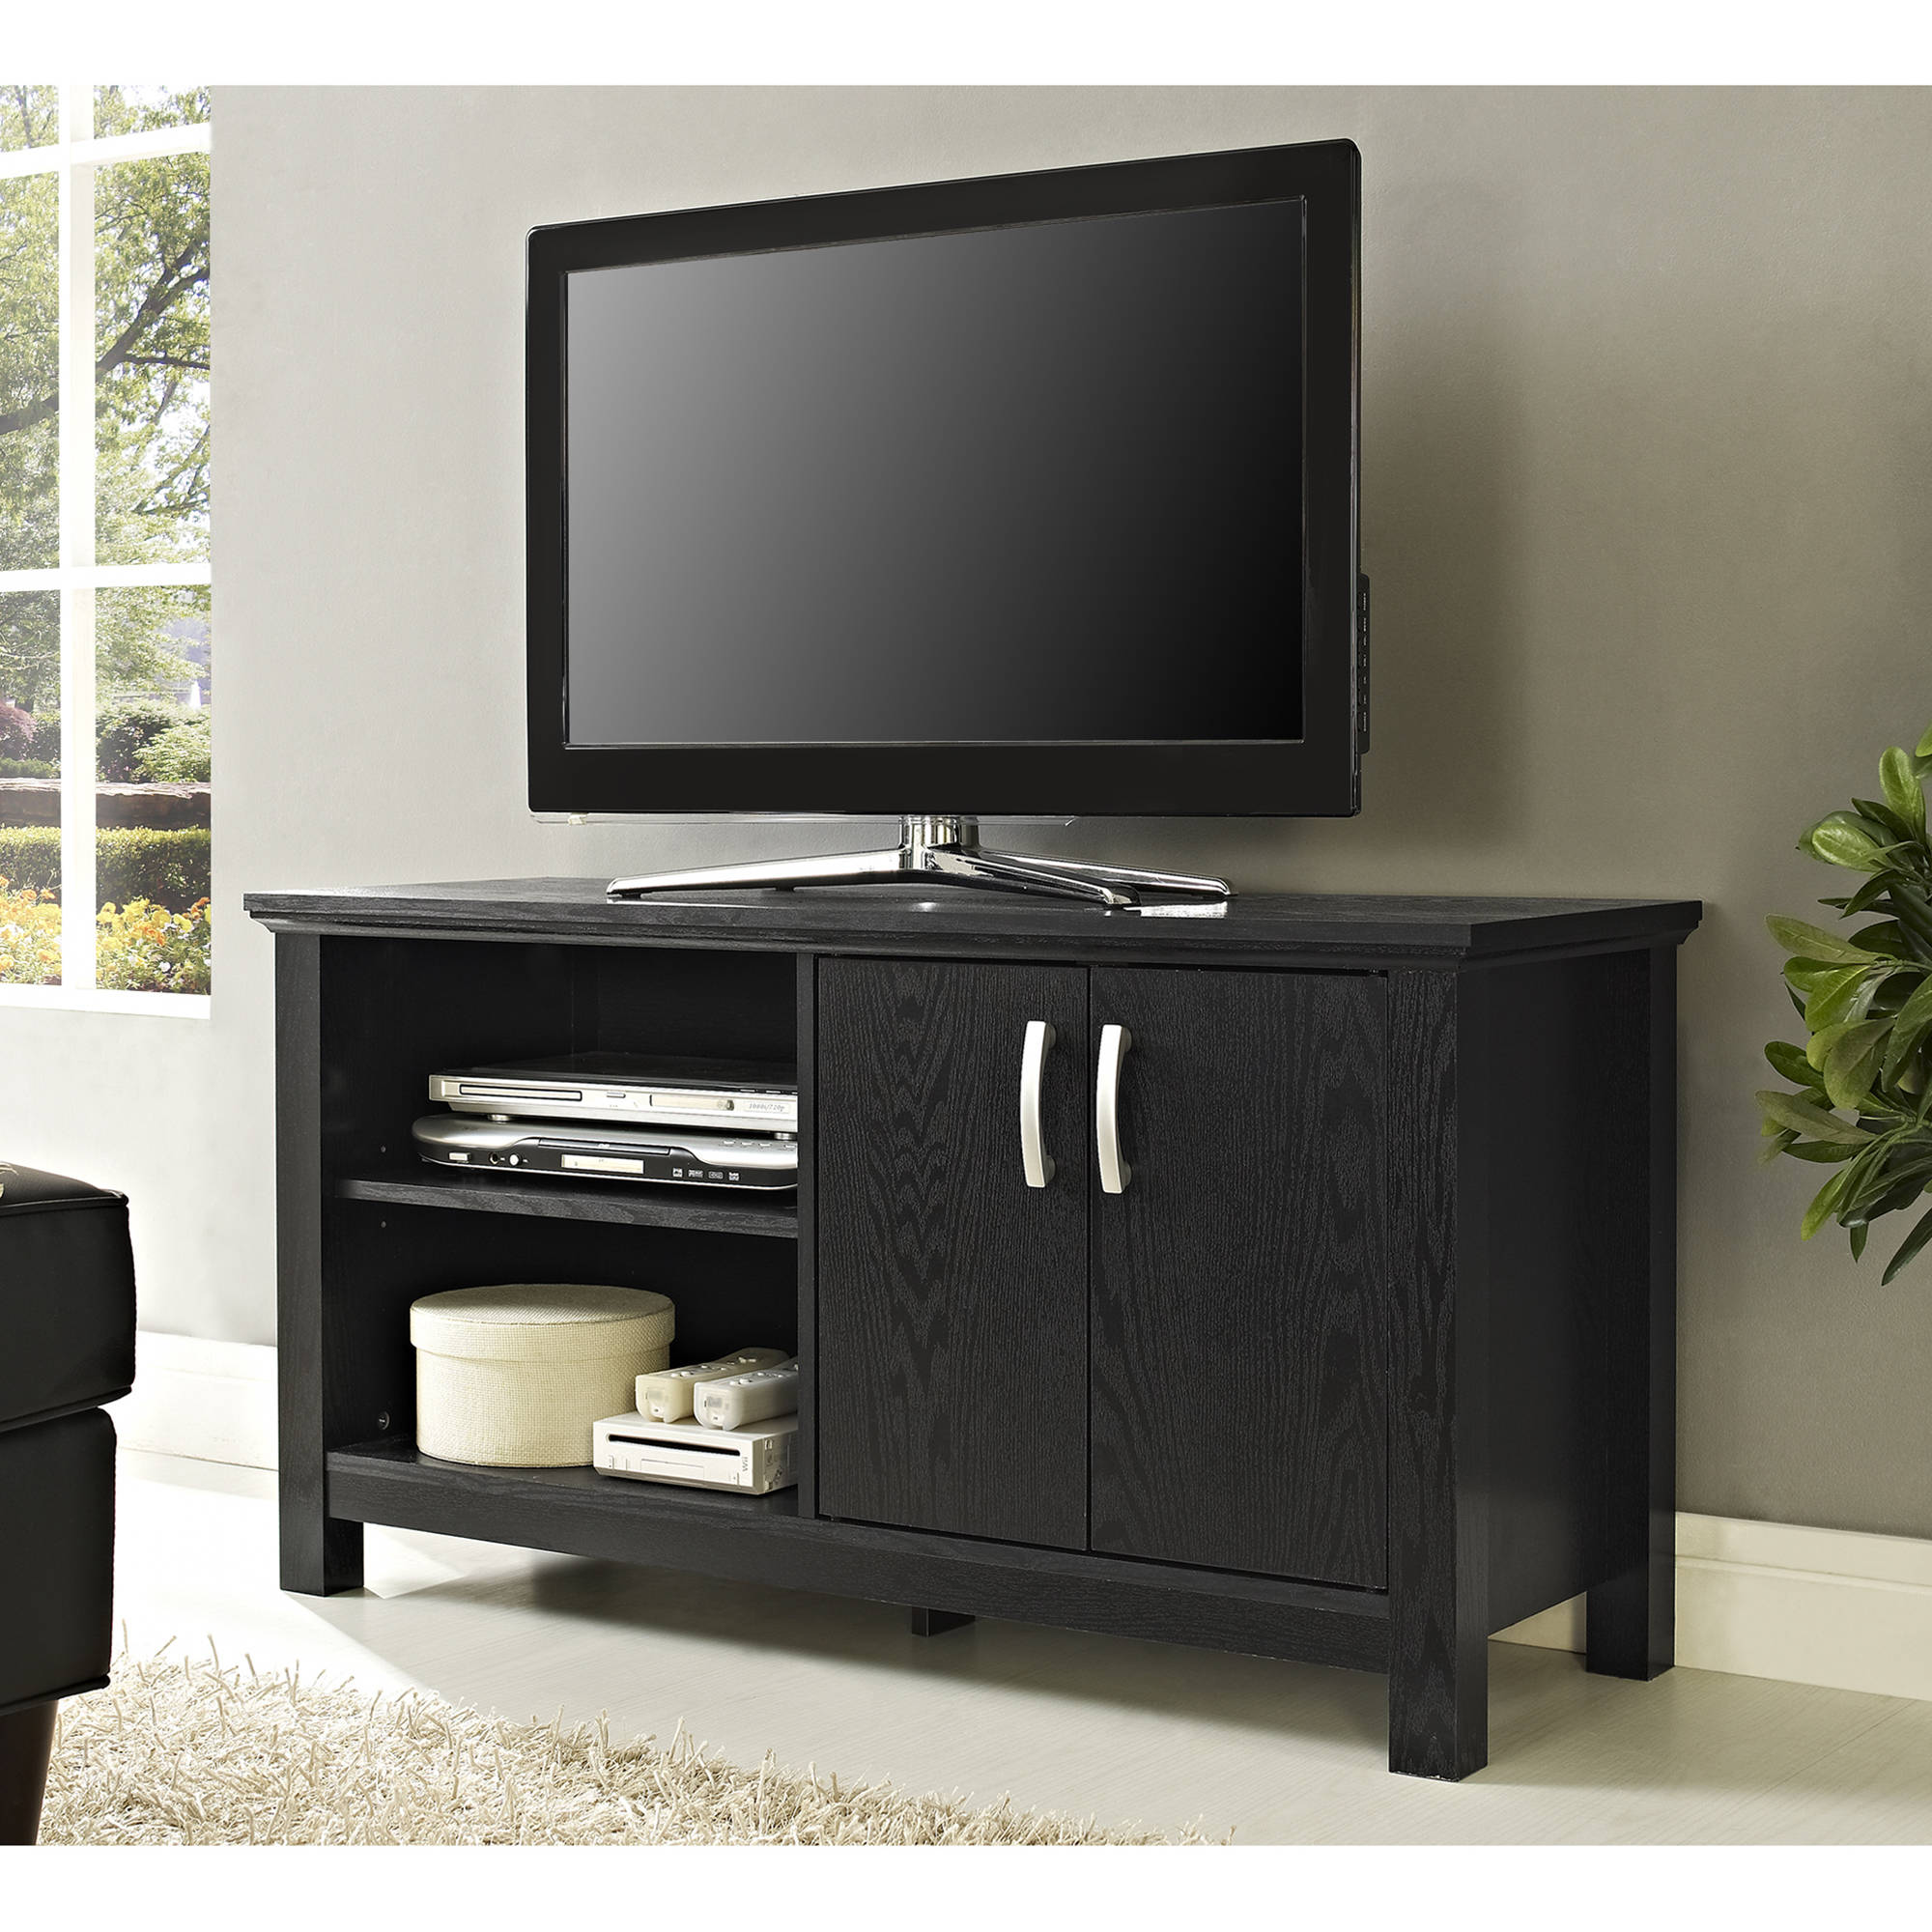 Walker Edison Black TV Stand for TVs up to 52""